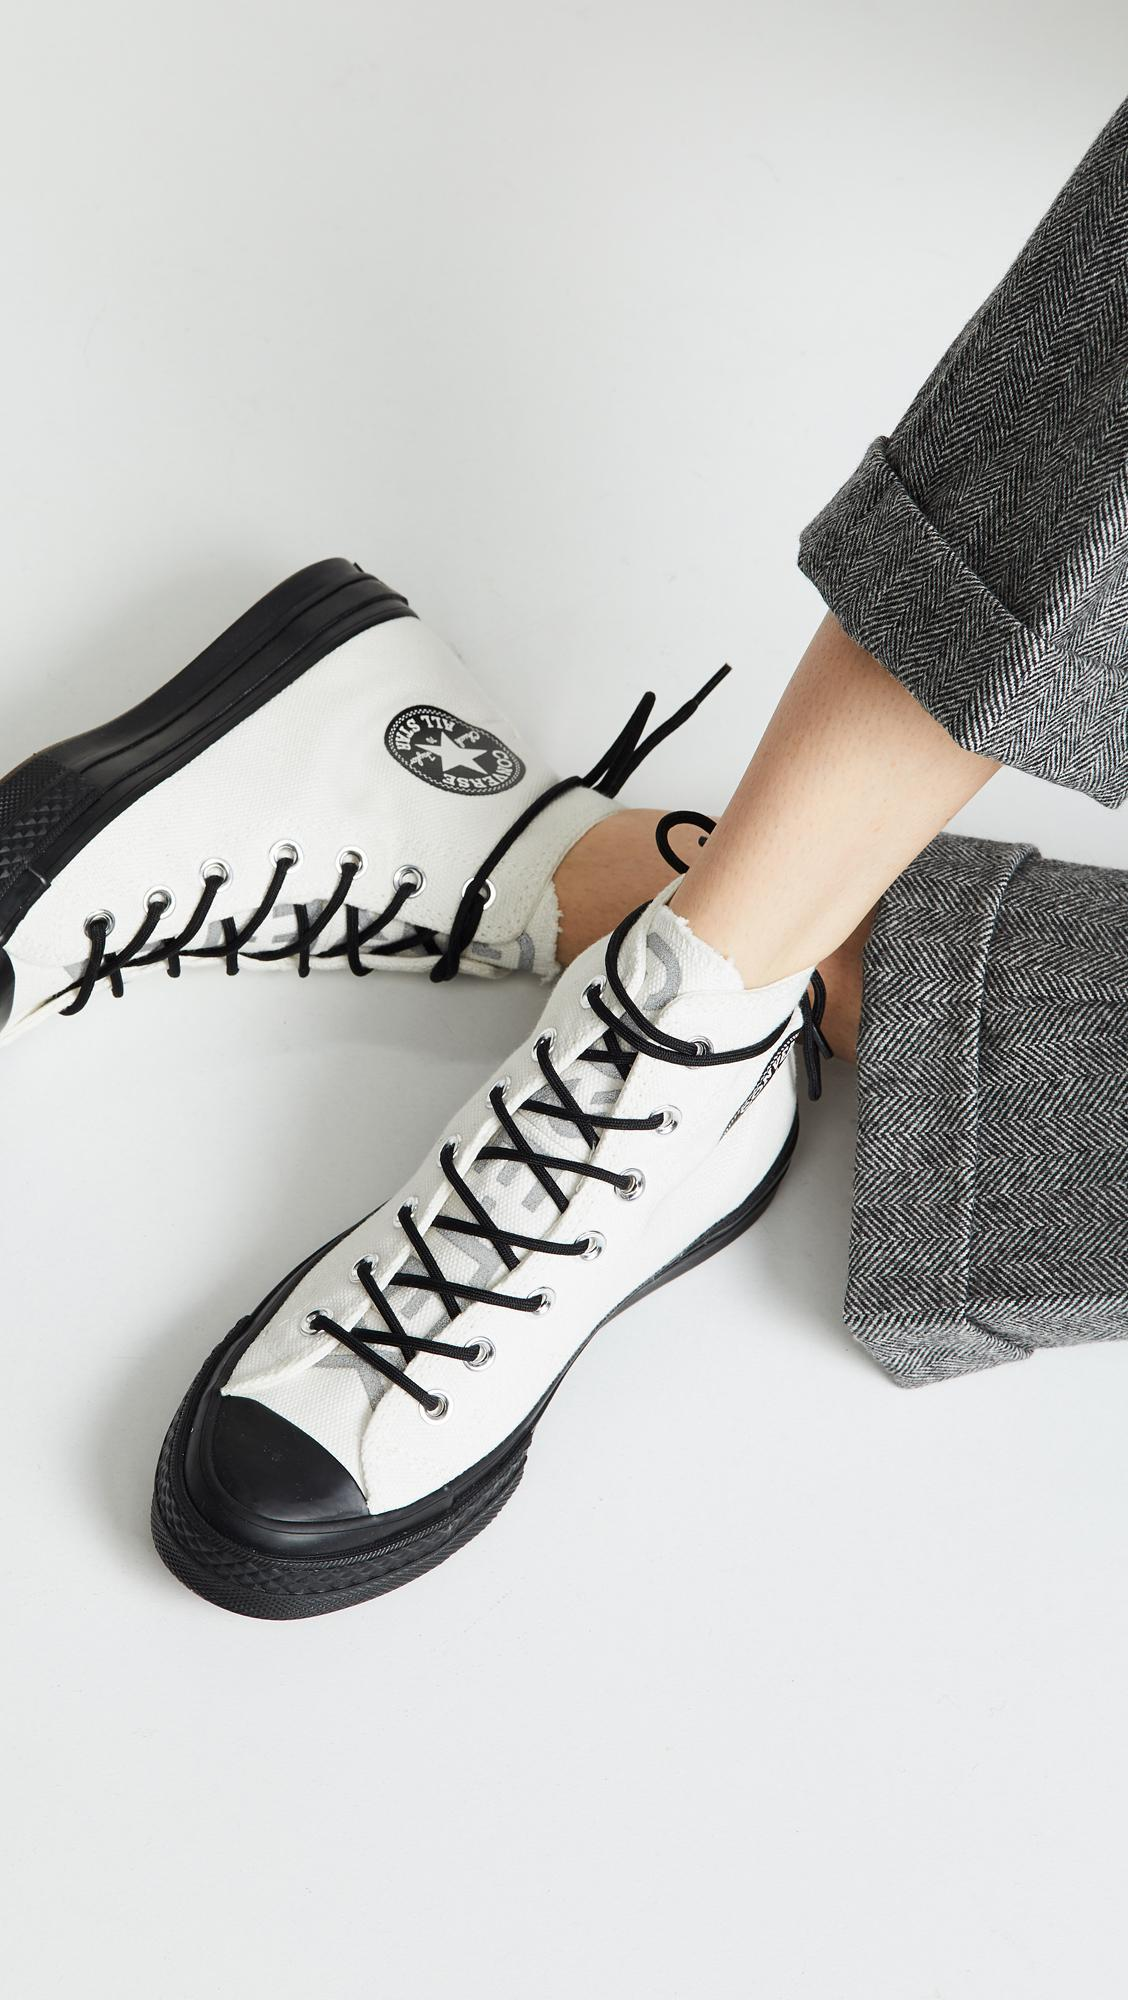 Lyst - Converse Chuck 70 Gore Tex High Top Sneakers in White bfc83dd0dc3